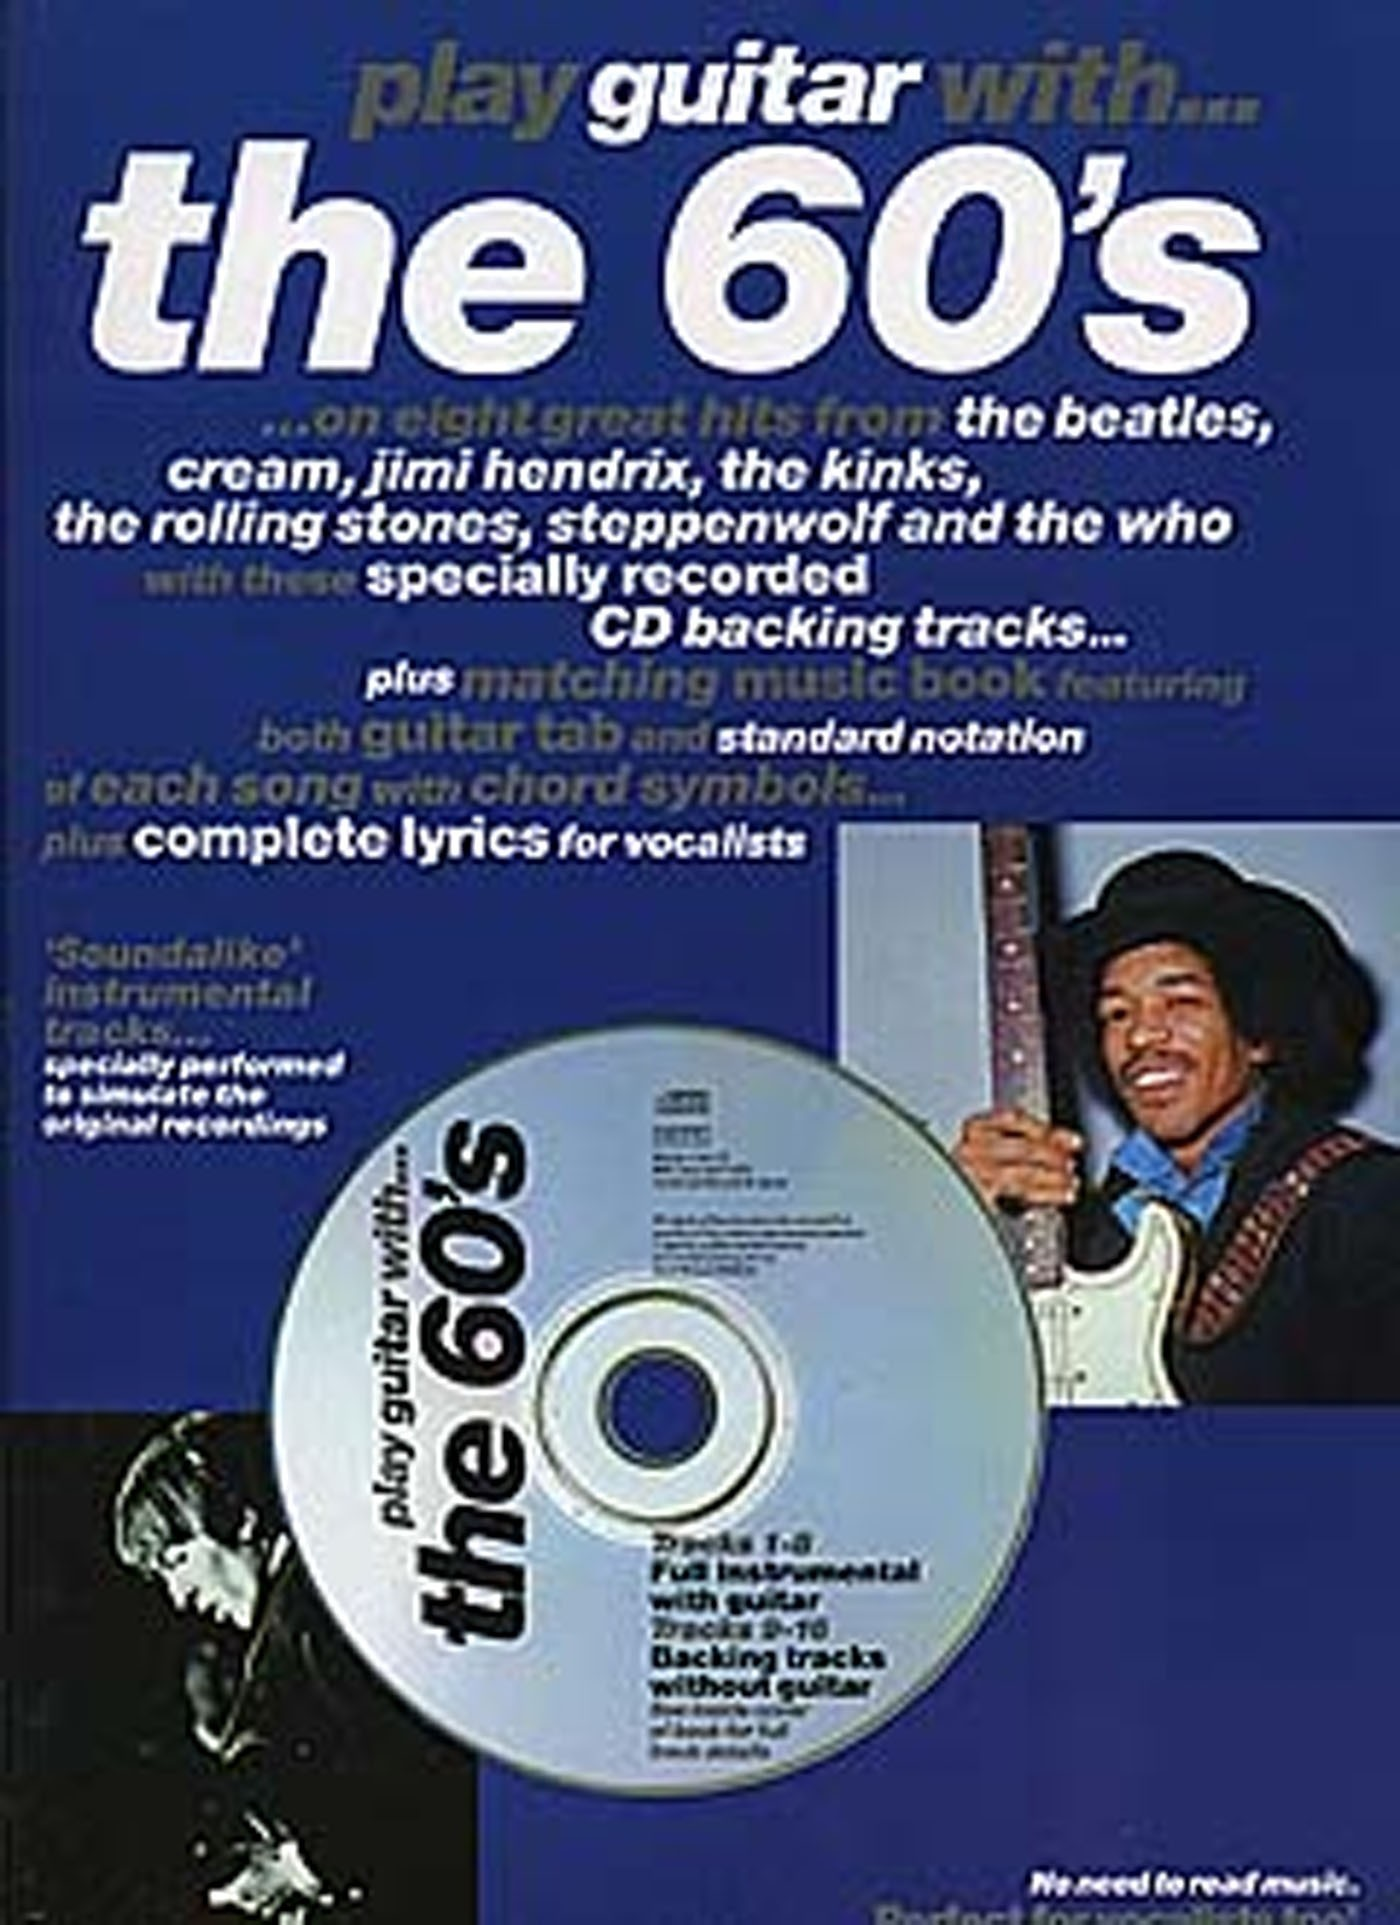 Play Guitar With The 60's Book & CD  Tab Notation Chords Complete Lyrics S135